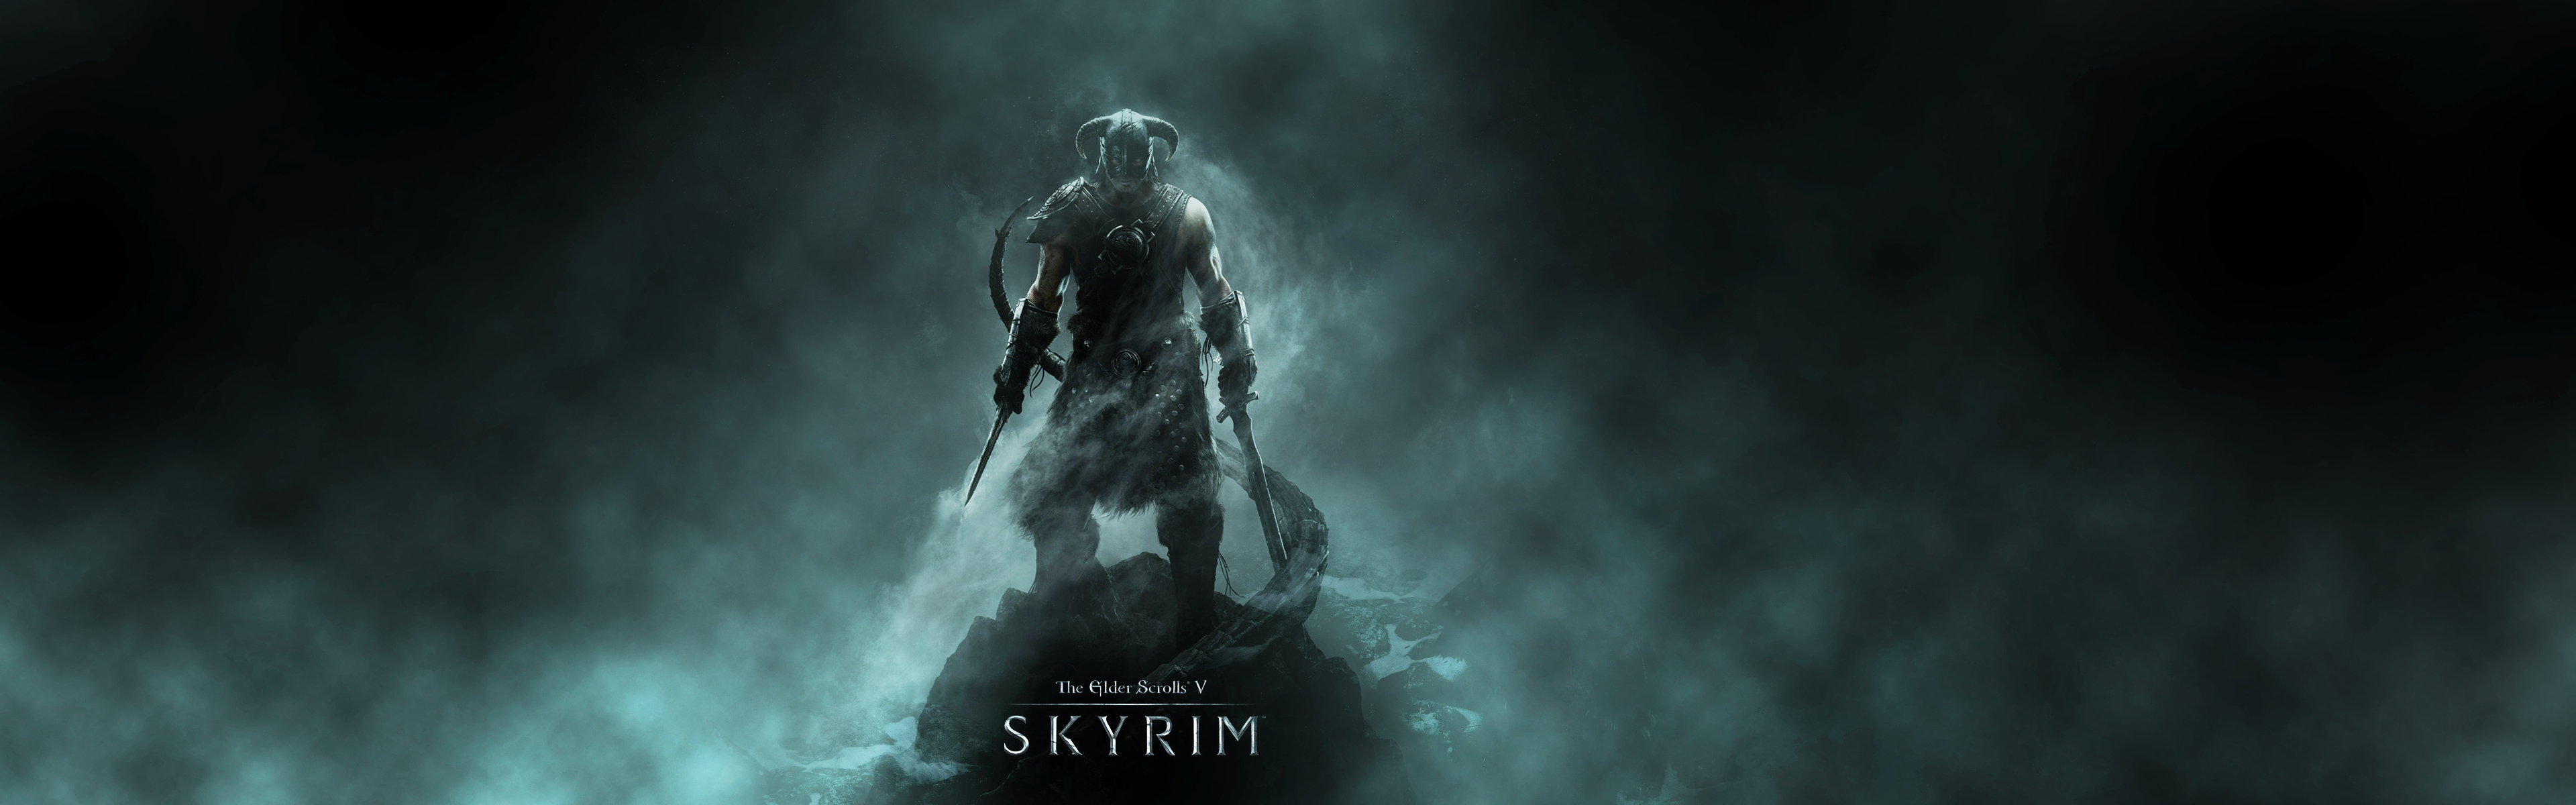 Game Of Thrones Dual Monitor Wallpapers Top Free Game Of Thrones